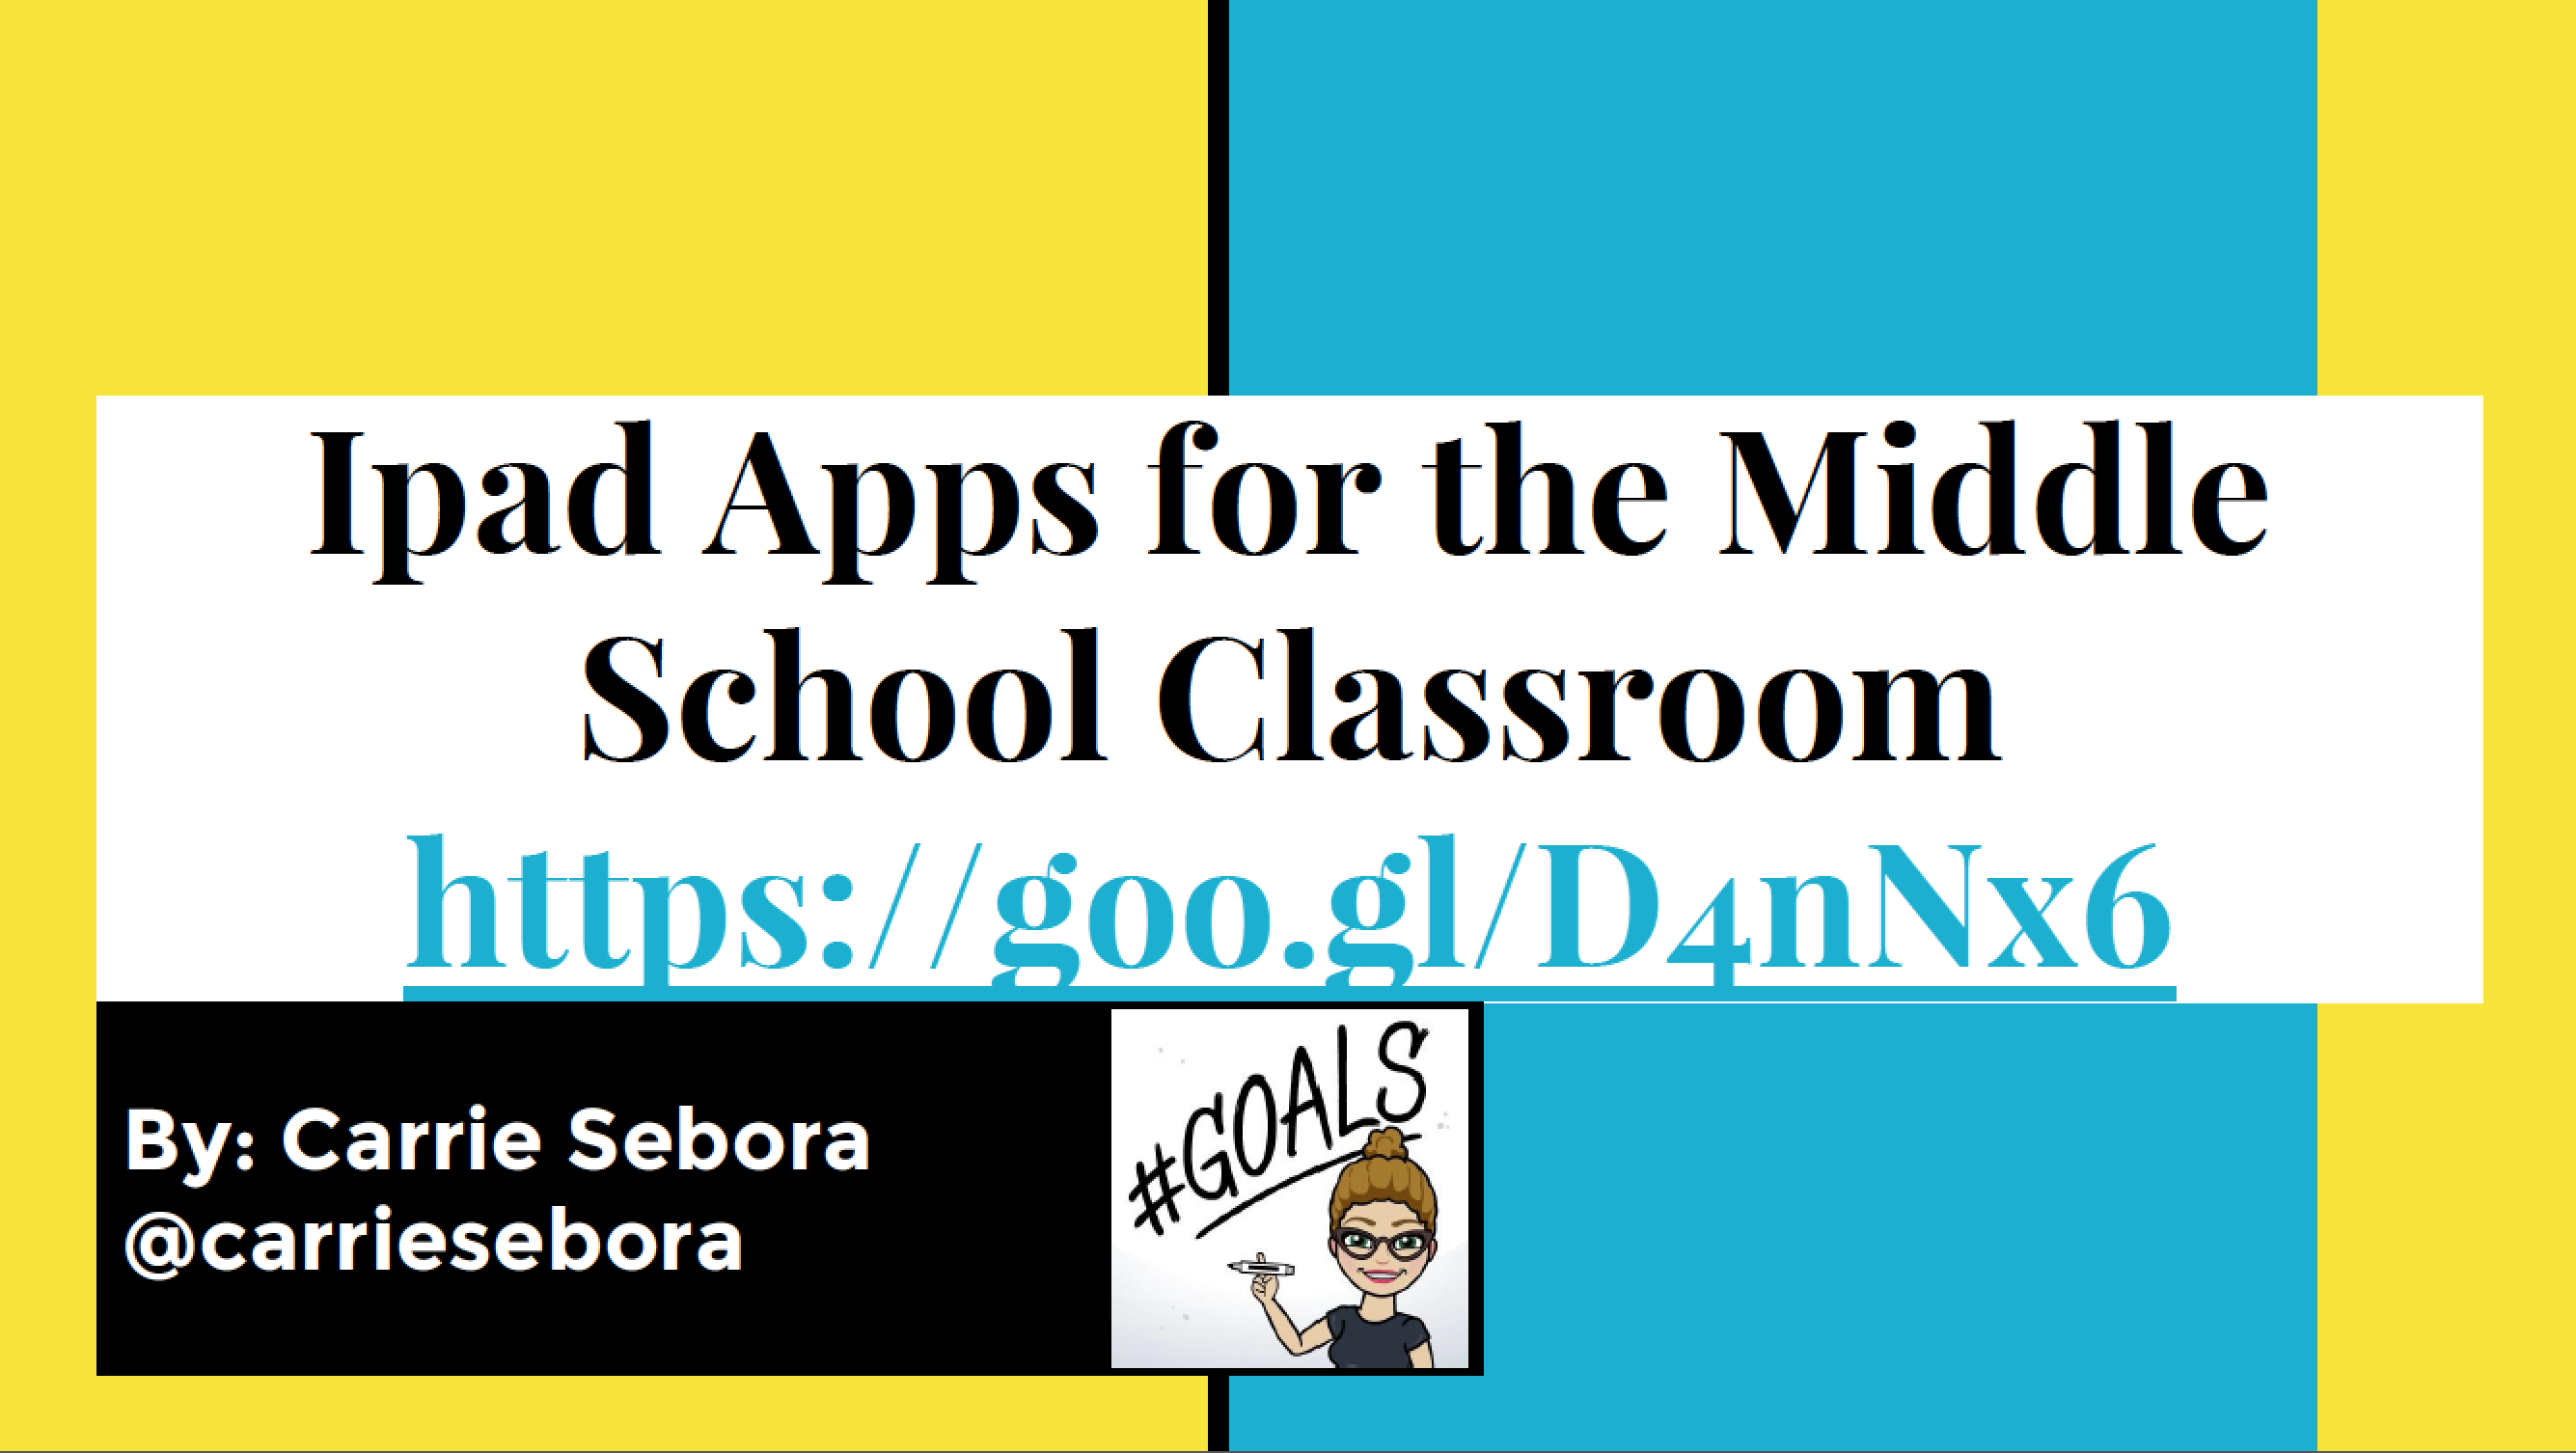 Ms. Sebora's iPad App Guide